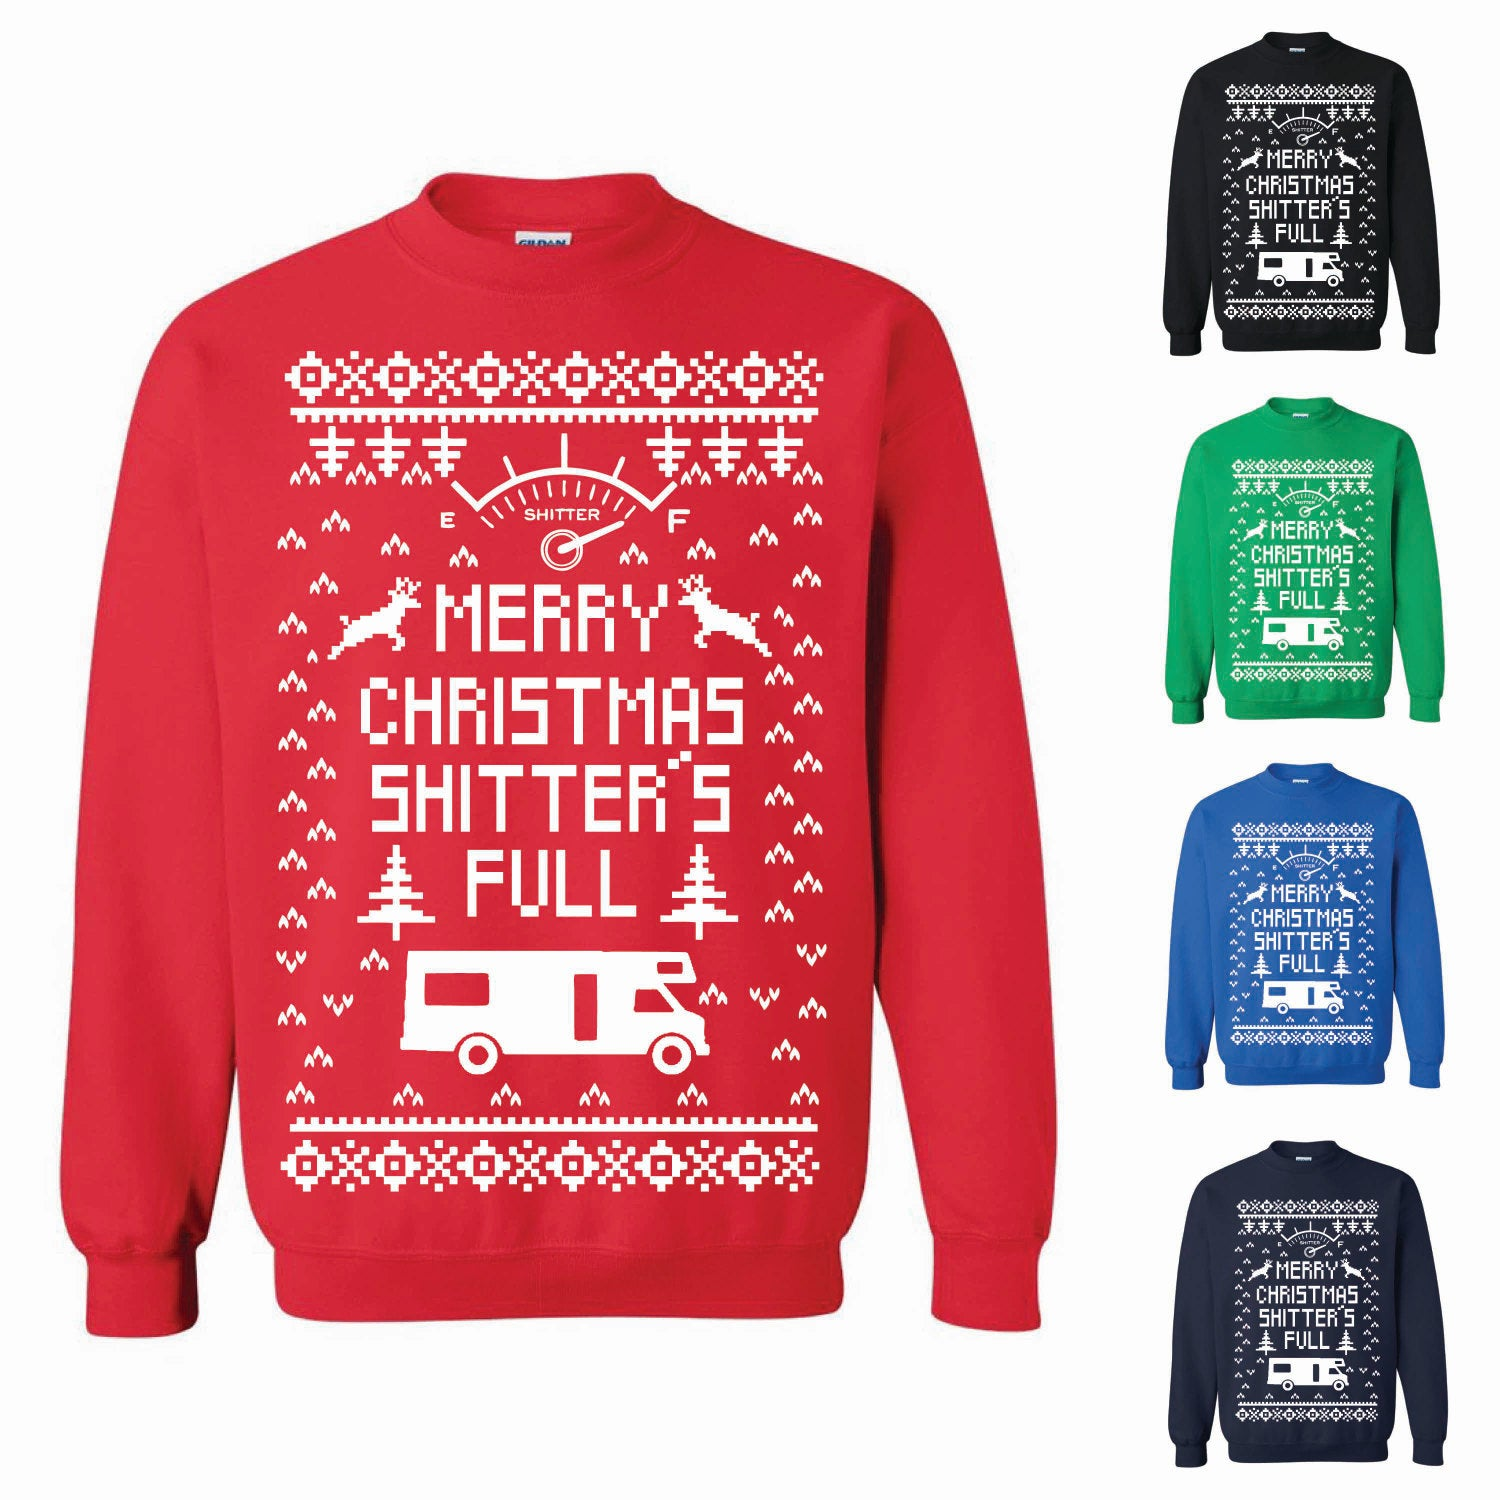 bca48be2a Merry Christmas Shitters Full Ugly Christmas Sweater Christmas Sweater  Sweatshirt Funny Christmas Tee Ugly Xmas Sweatshirt ...